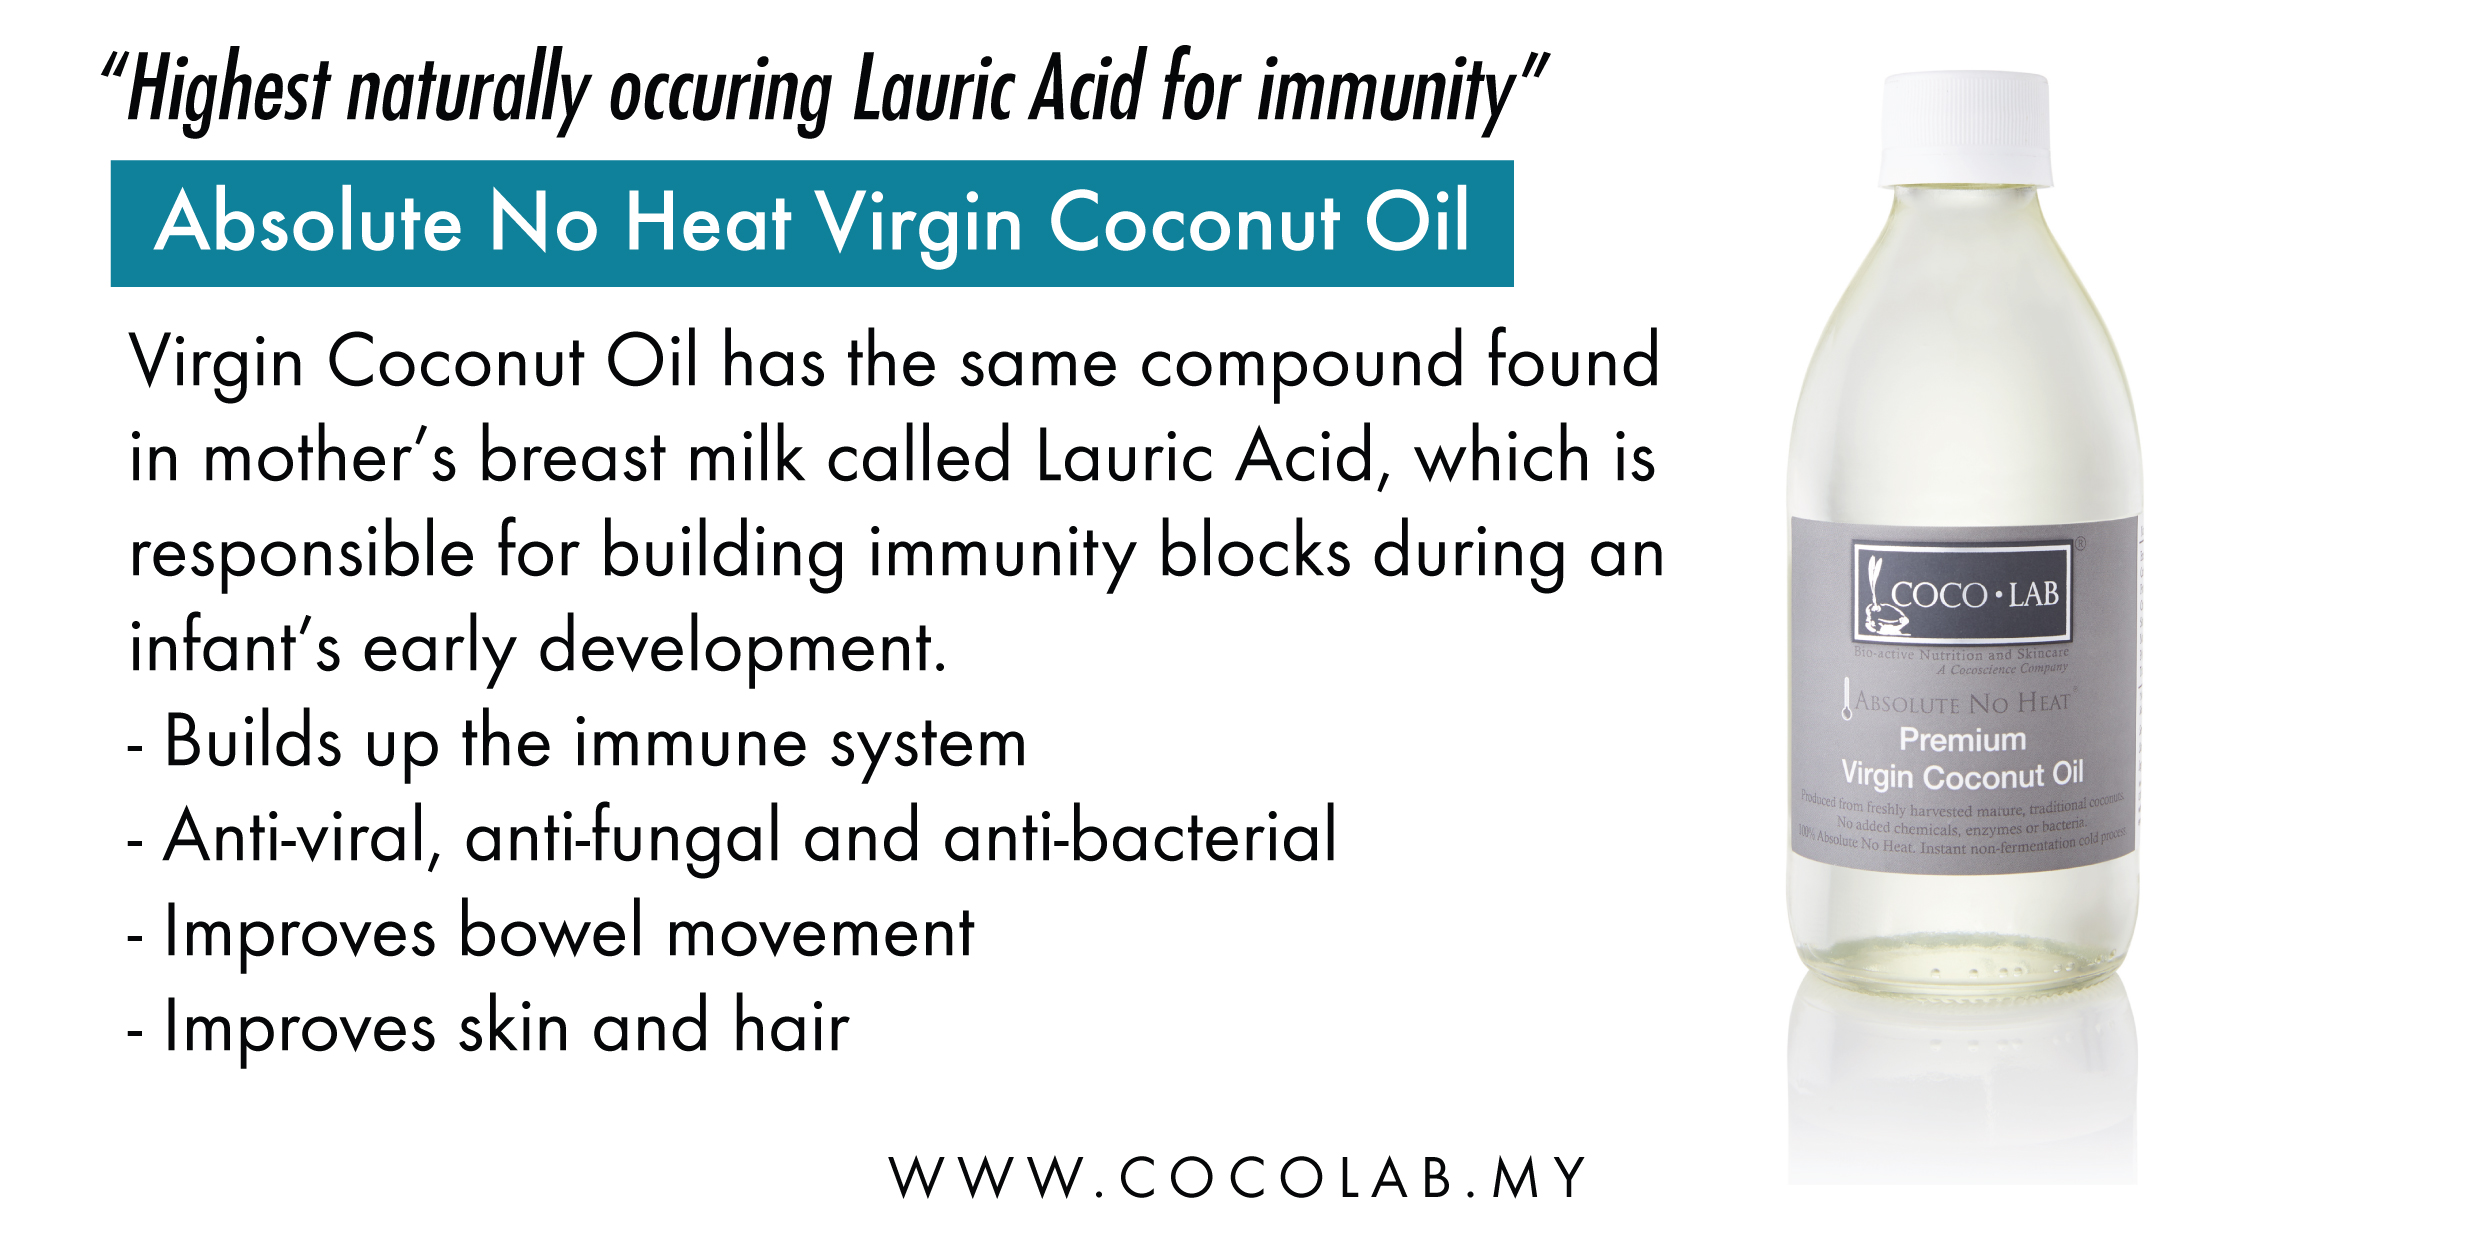 IMMUNITY BOOSTER PICKS - COCOLAB VCO Virgin Coconut Oil classic.jpg